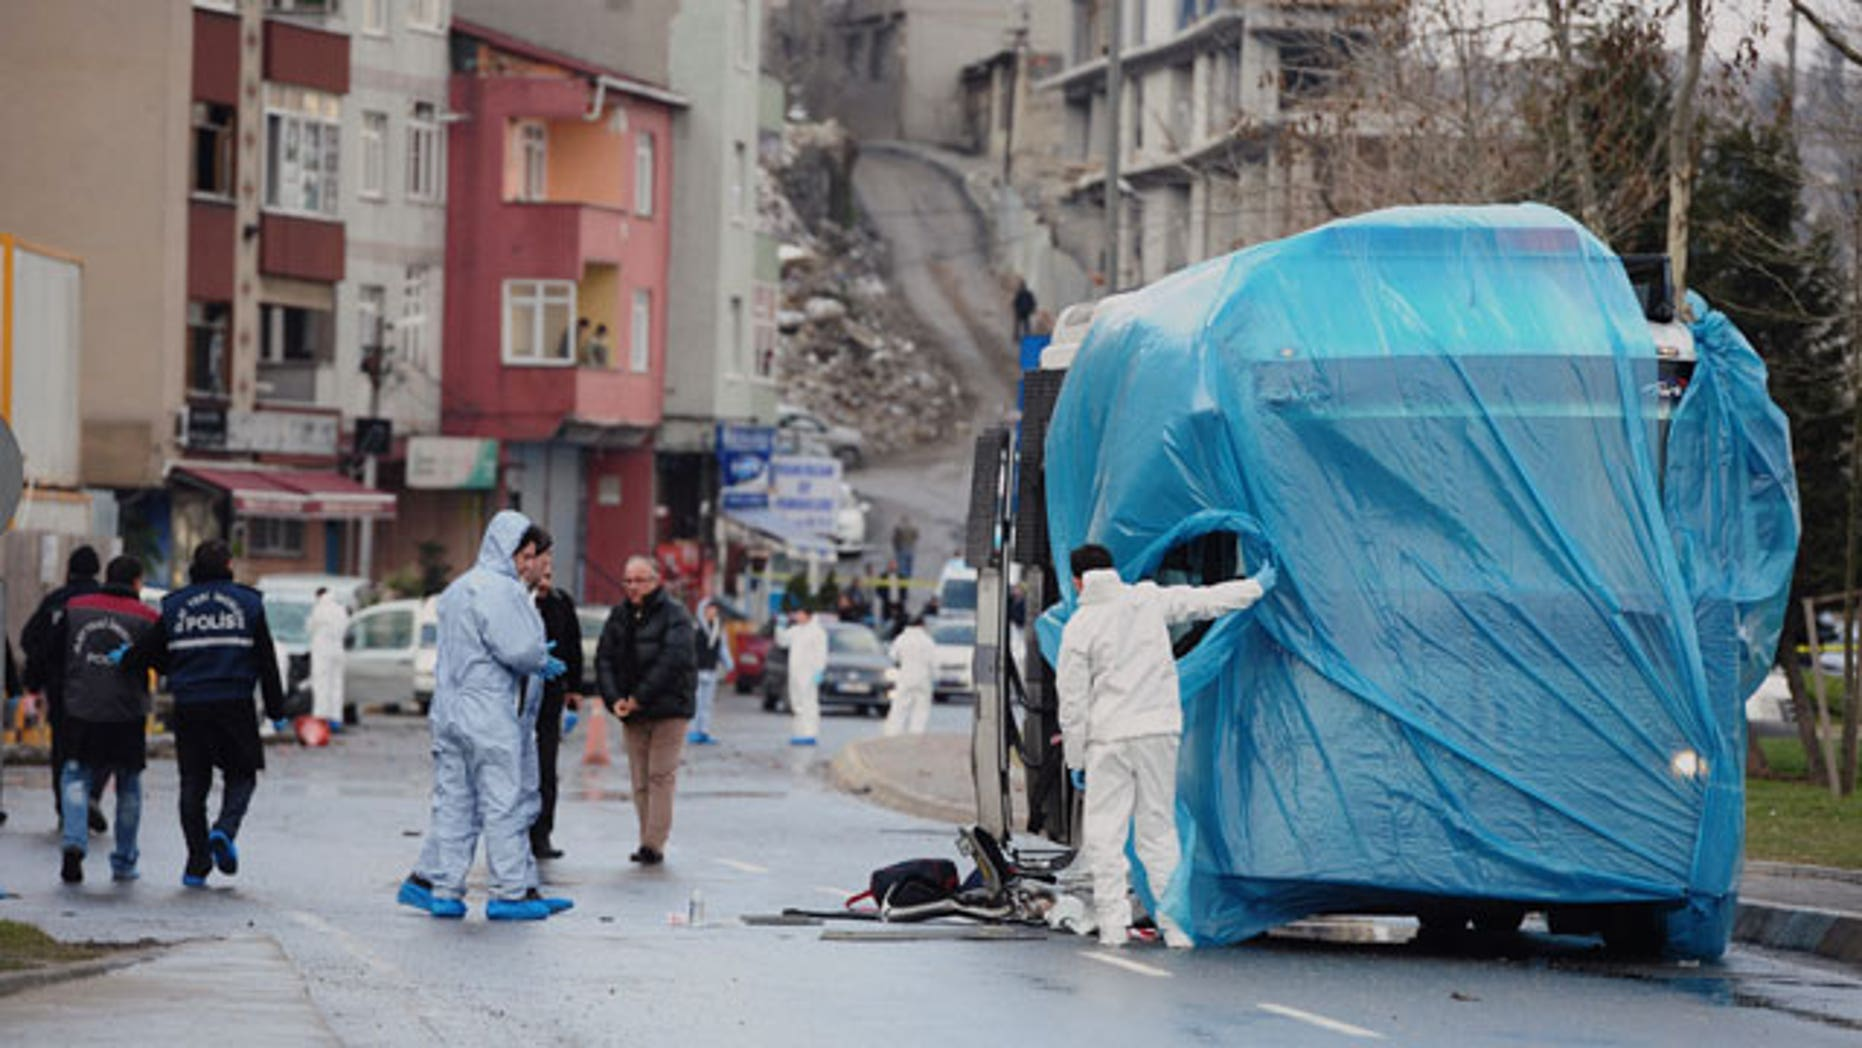 March 1, 2012: Forensic police cover a damaged police vehicle after a bomb went off near the country's ruling party offices in Turkey's largest city, Istanbul.